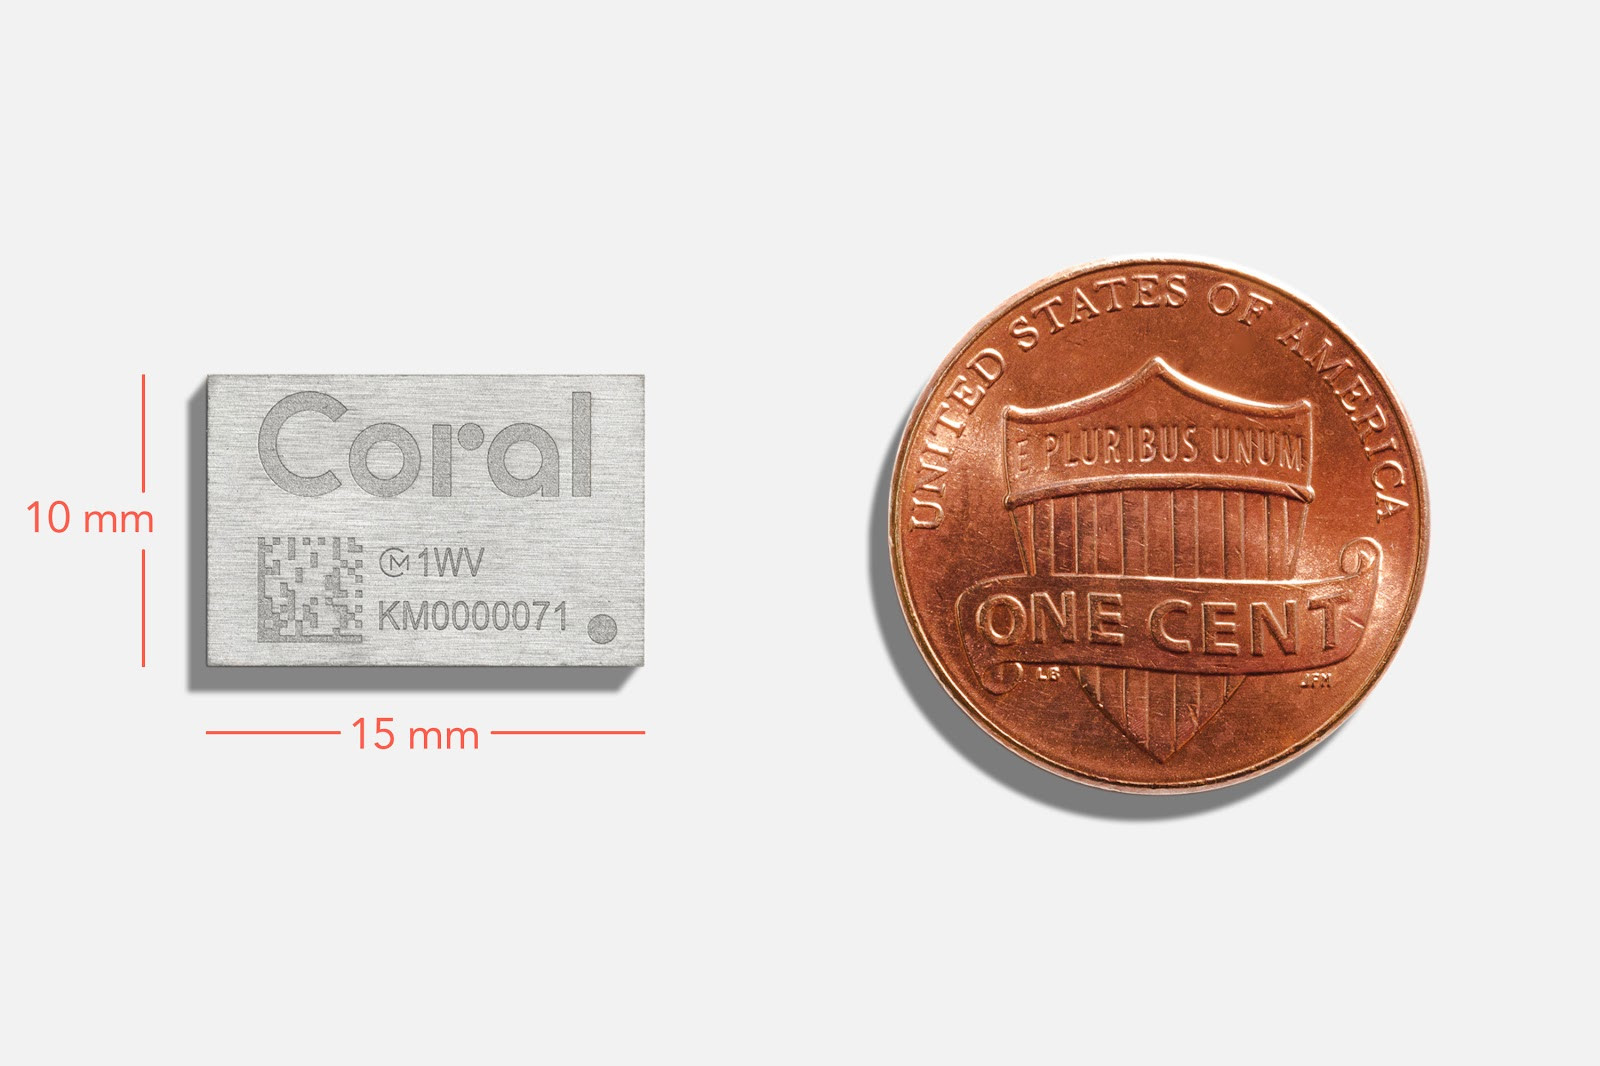 Google releases new Coral edge AI hardware ahead of CES 2020